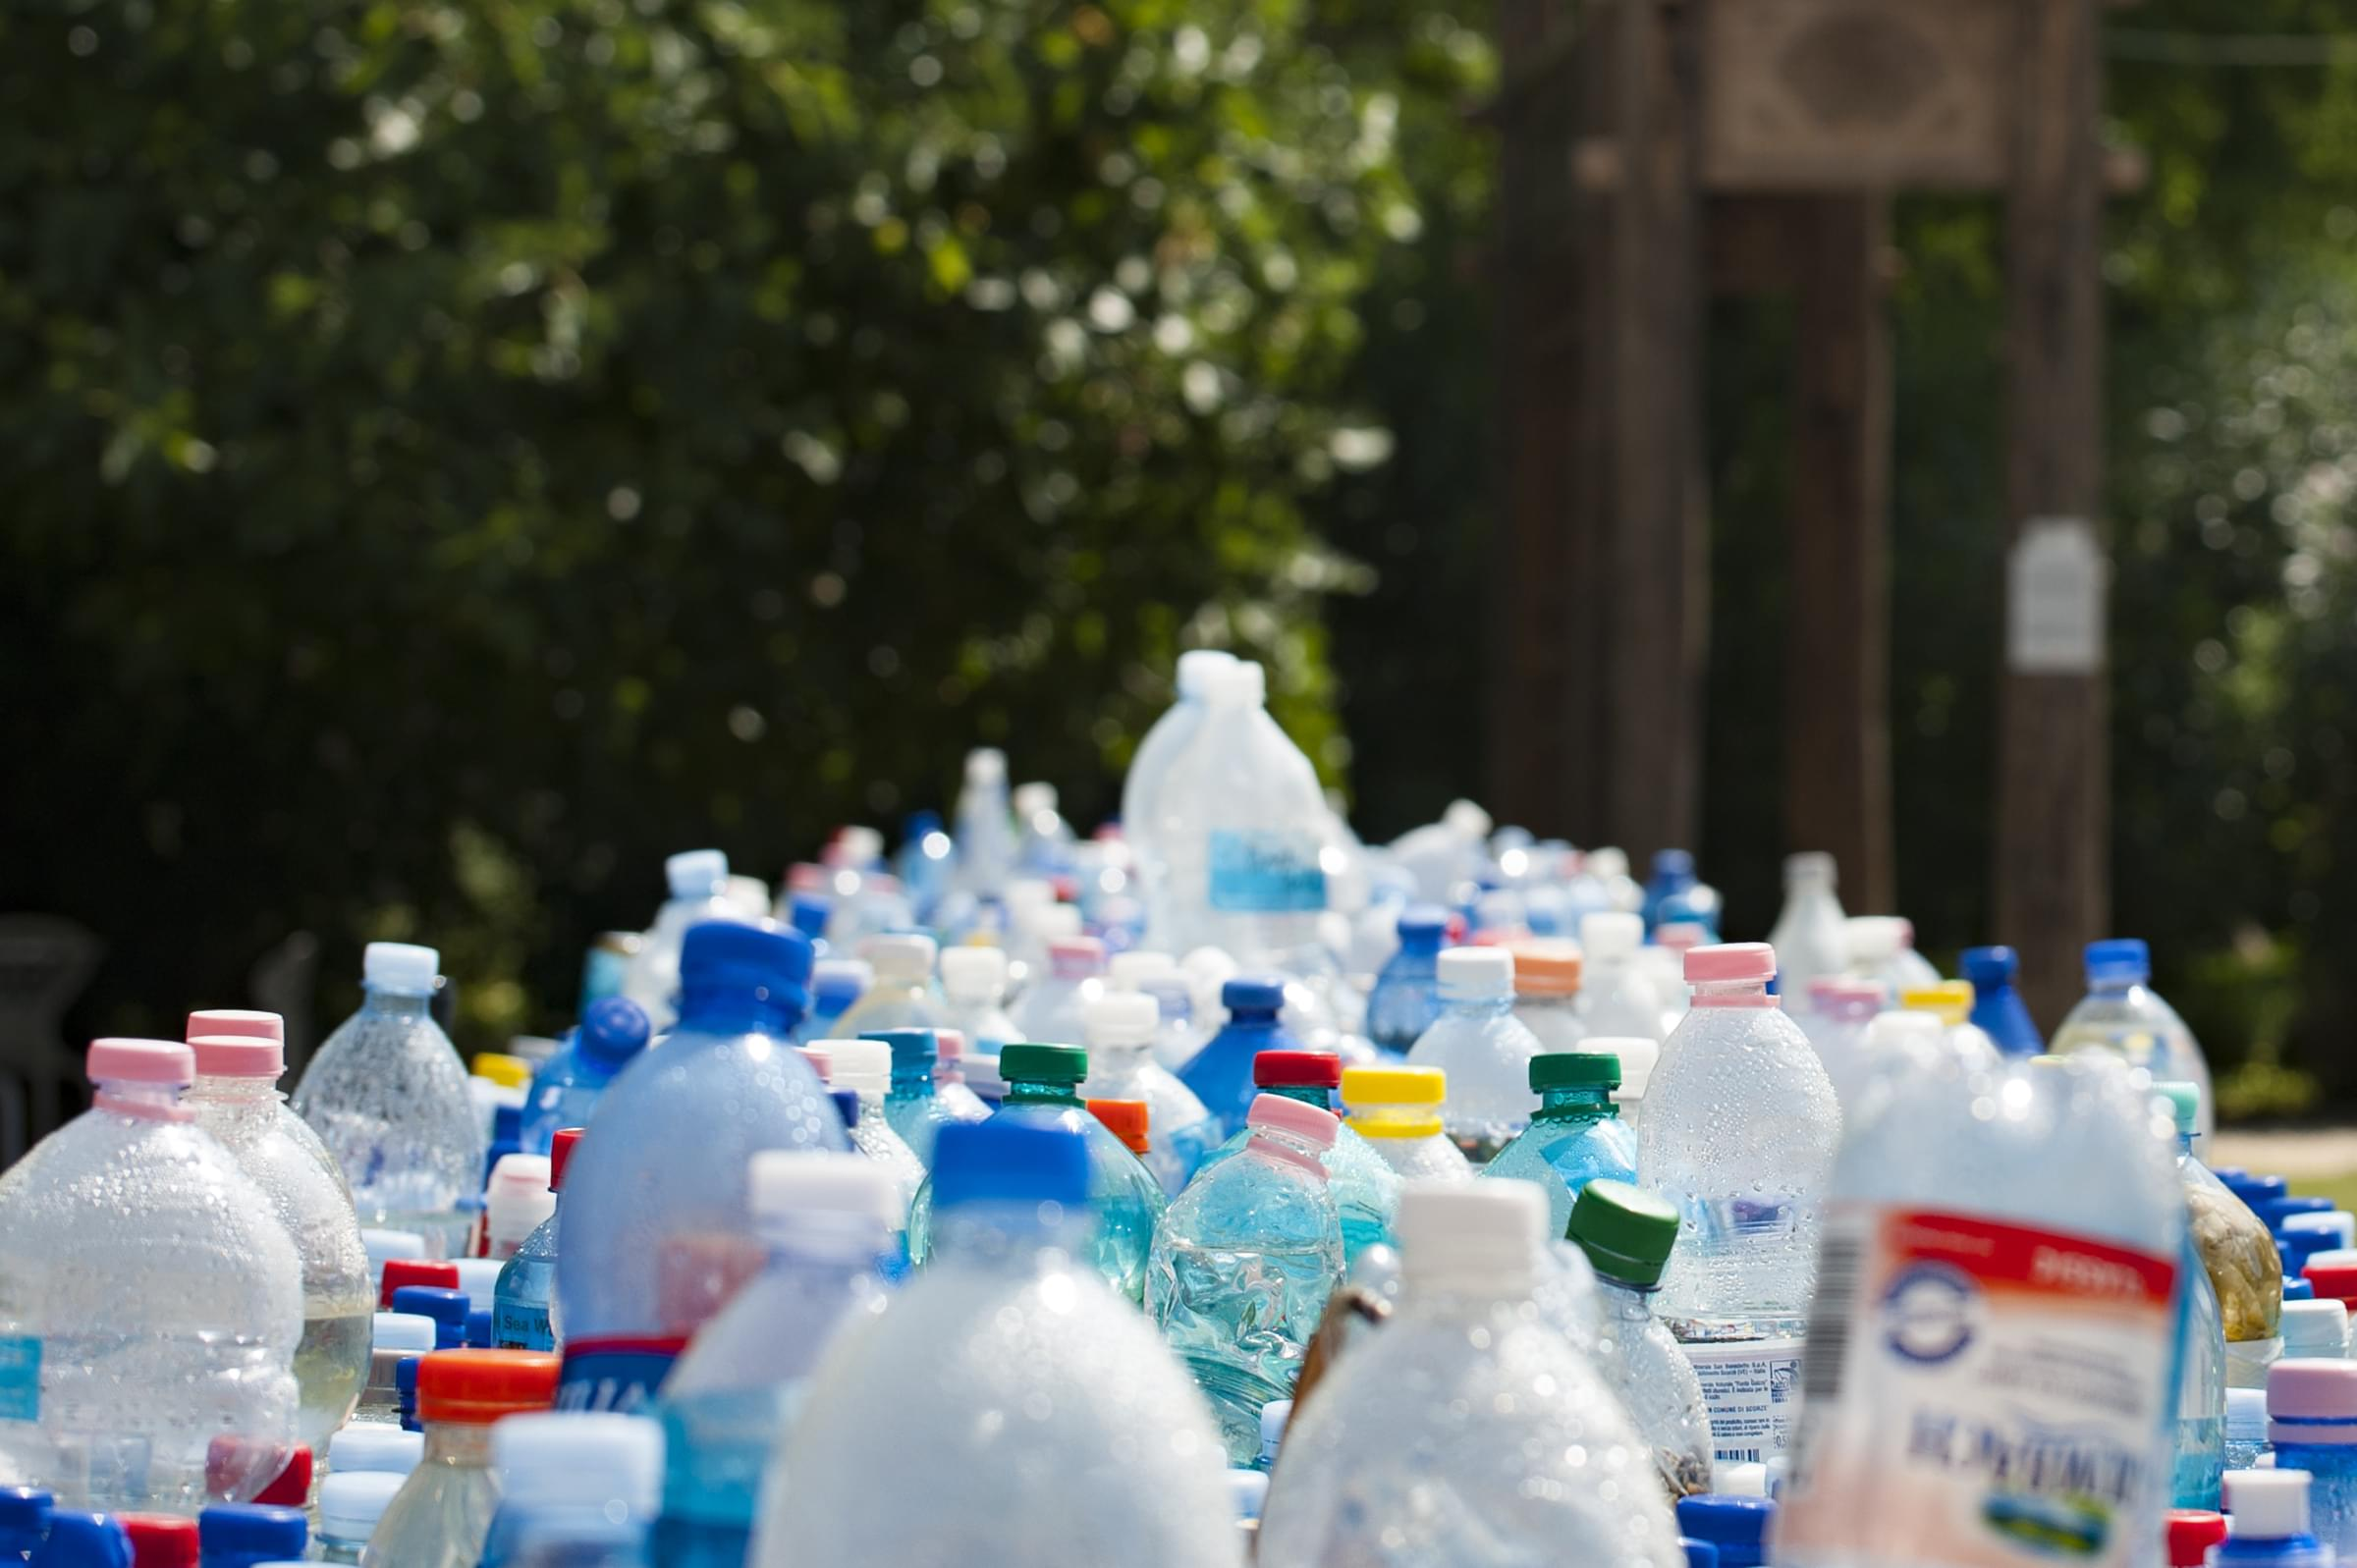 plastic Bottles Waste Connections